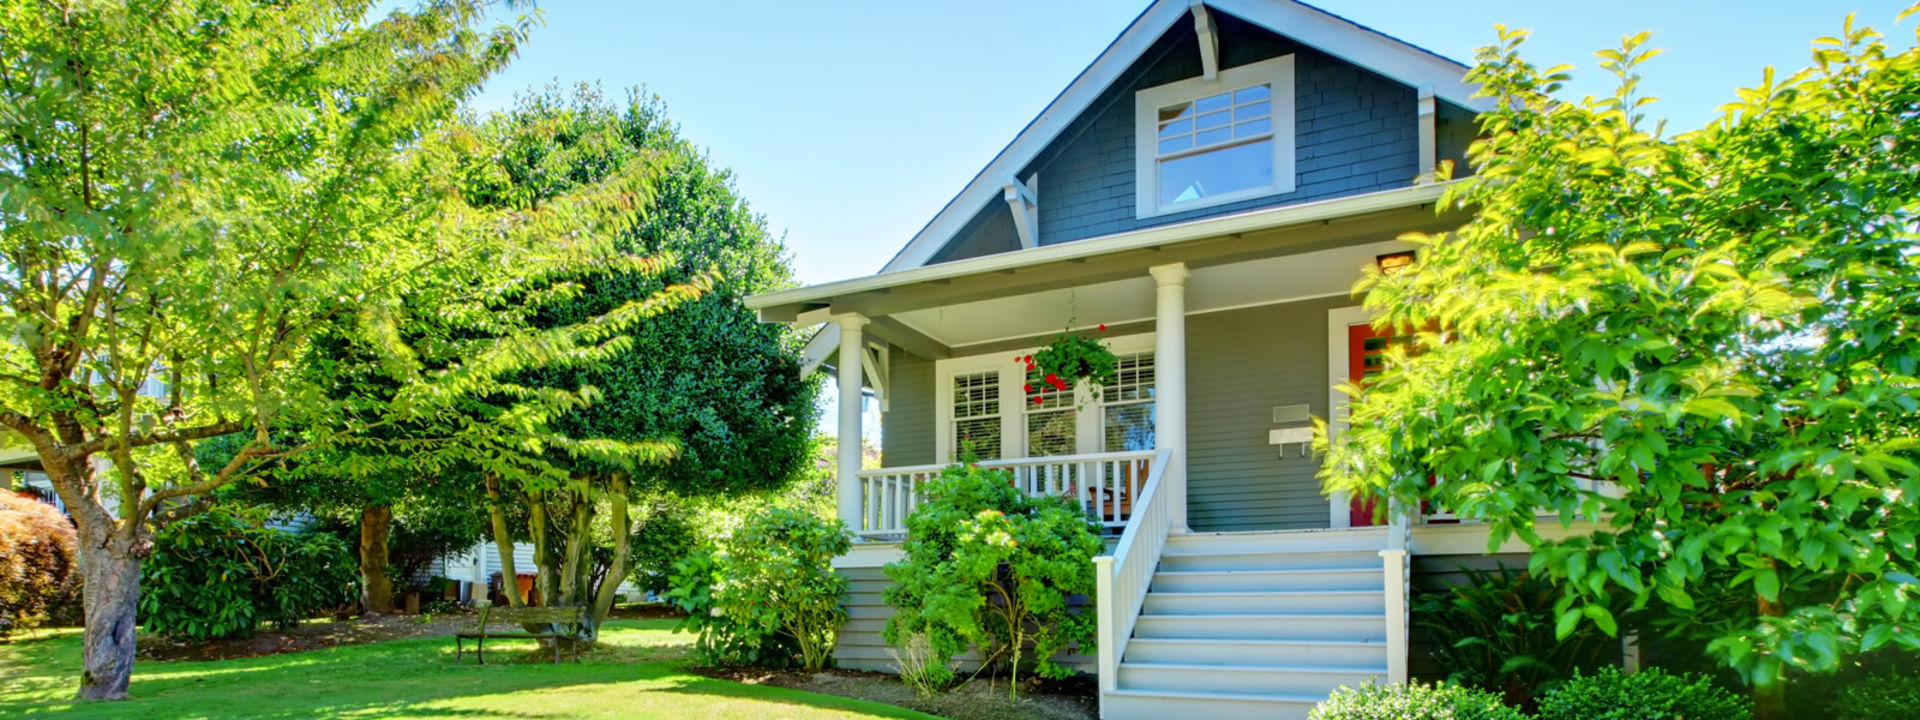 Buying a house isn't as daunting as you think